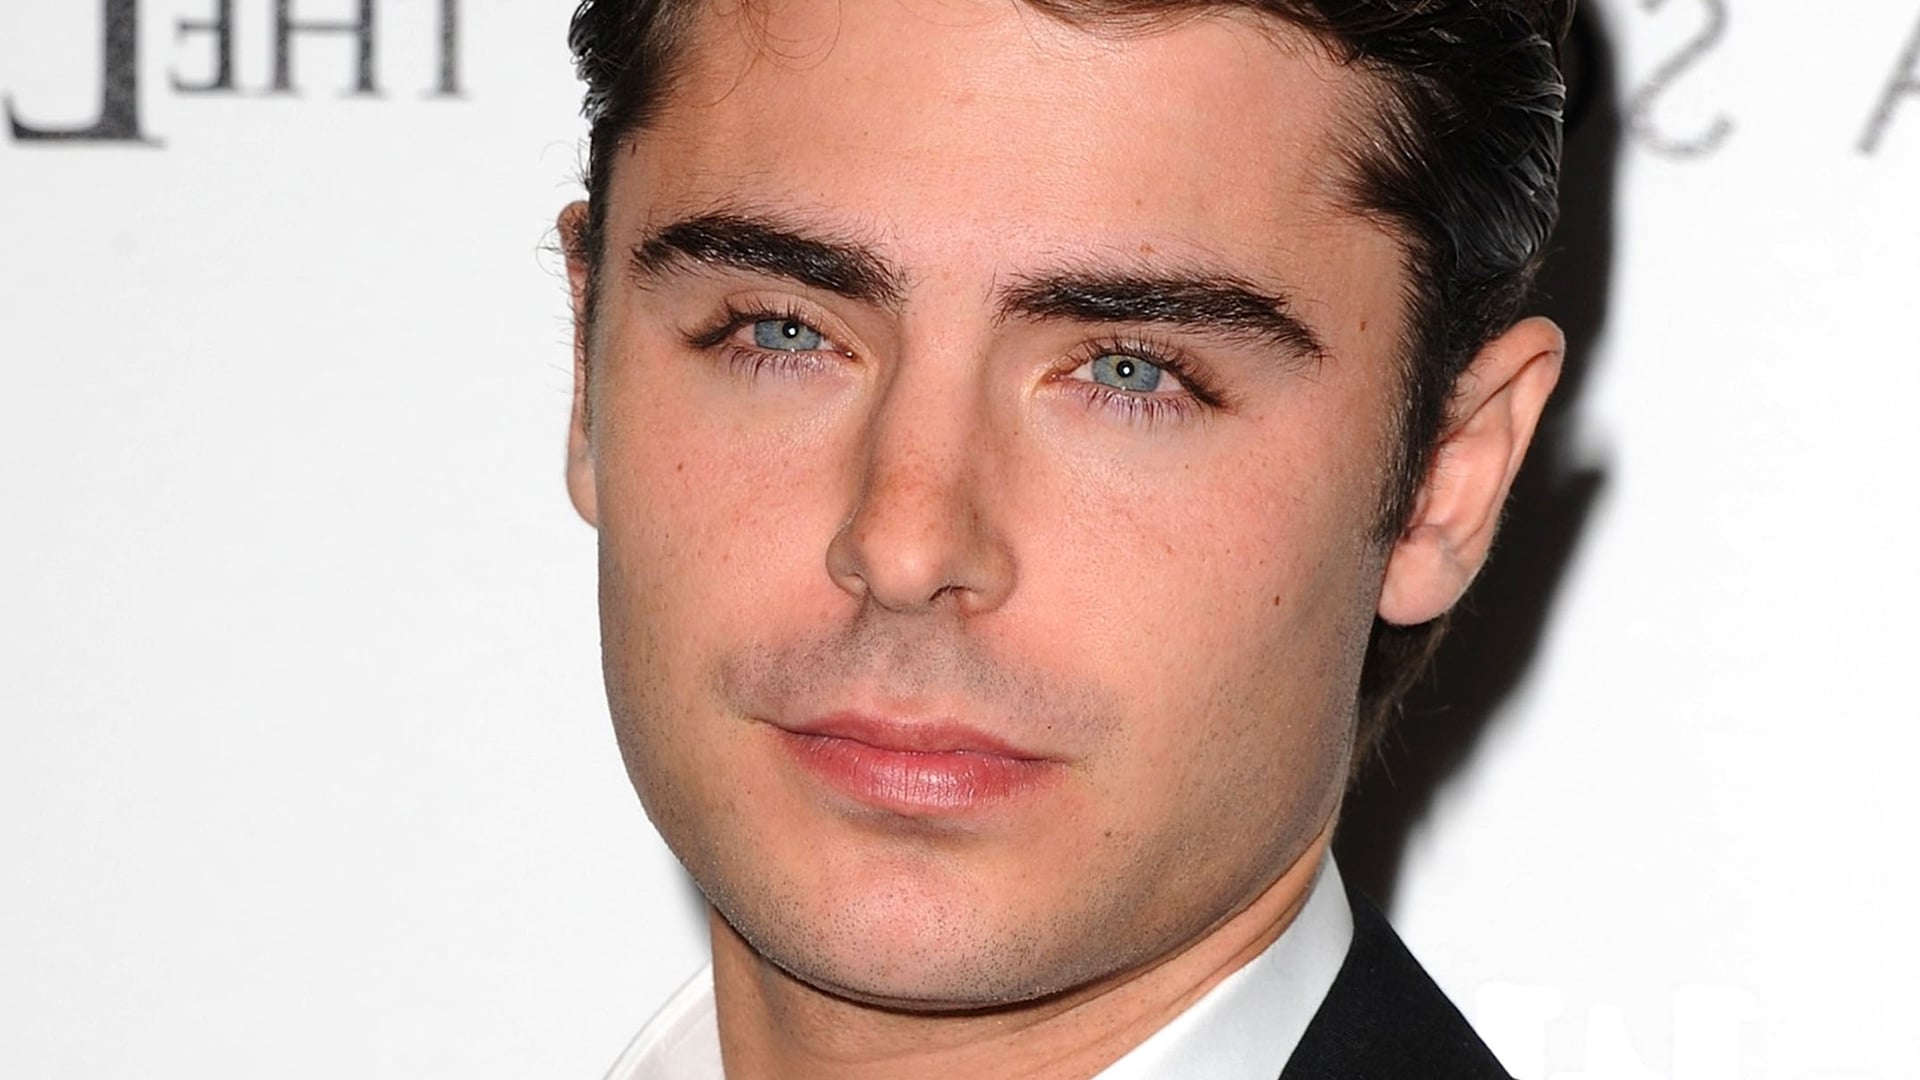 Cool Zac Efron photo